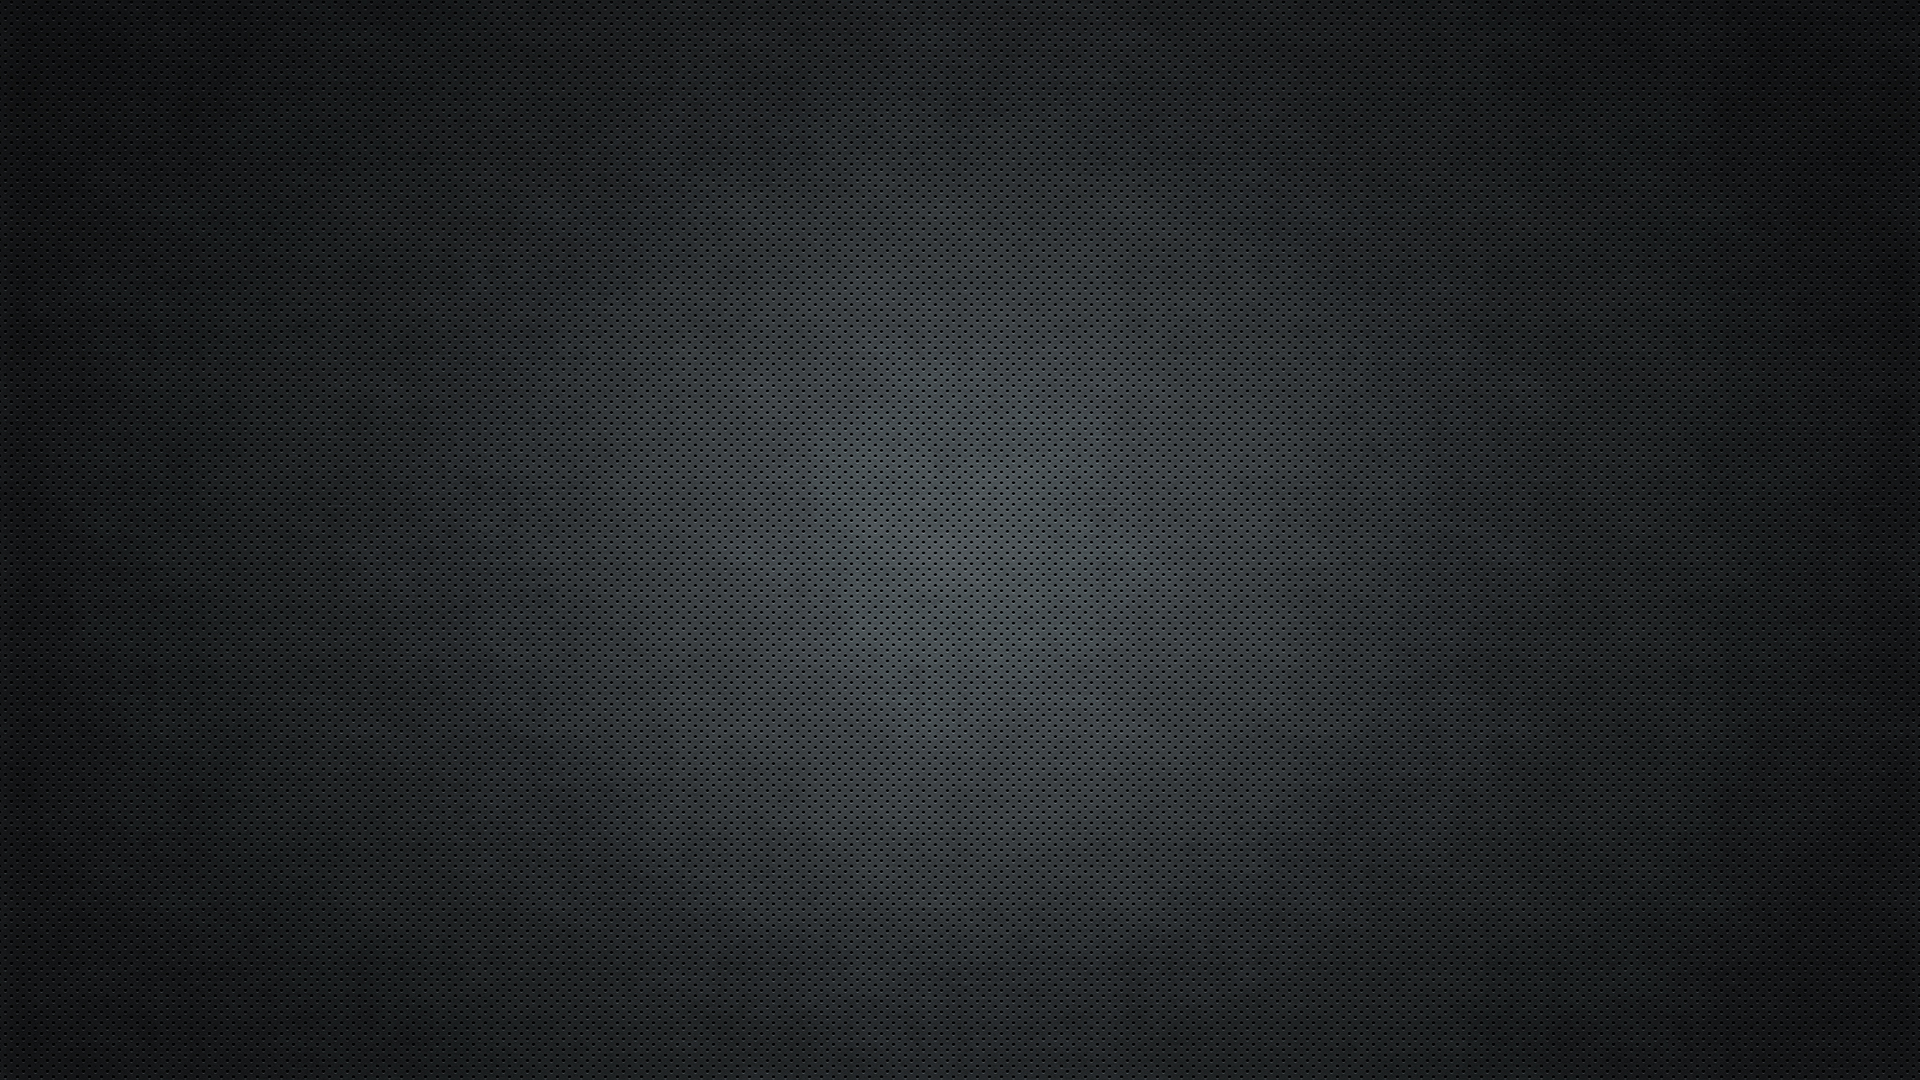 3 Dark Grey HD Wallpapers | Backgrounds - Wallpaper Abyss